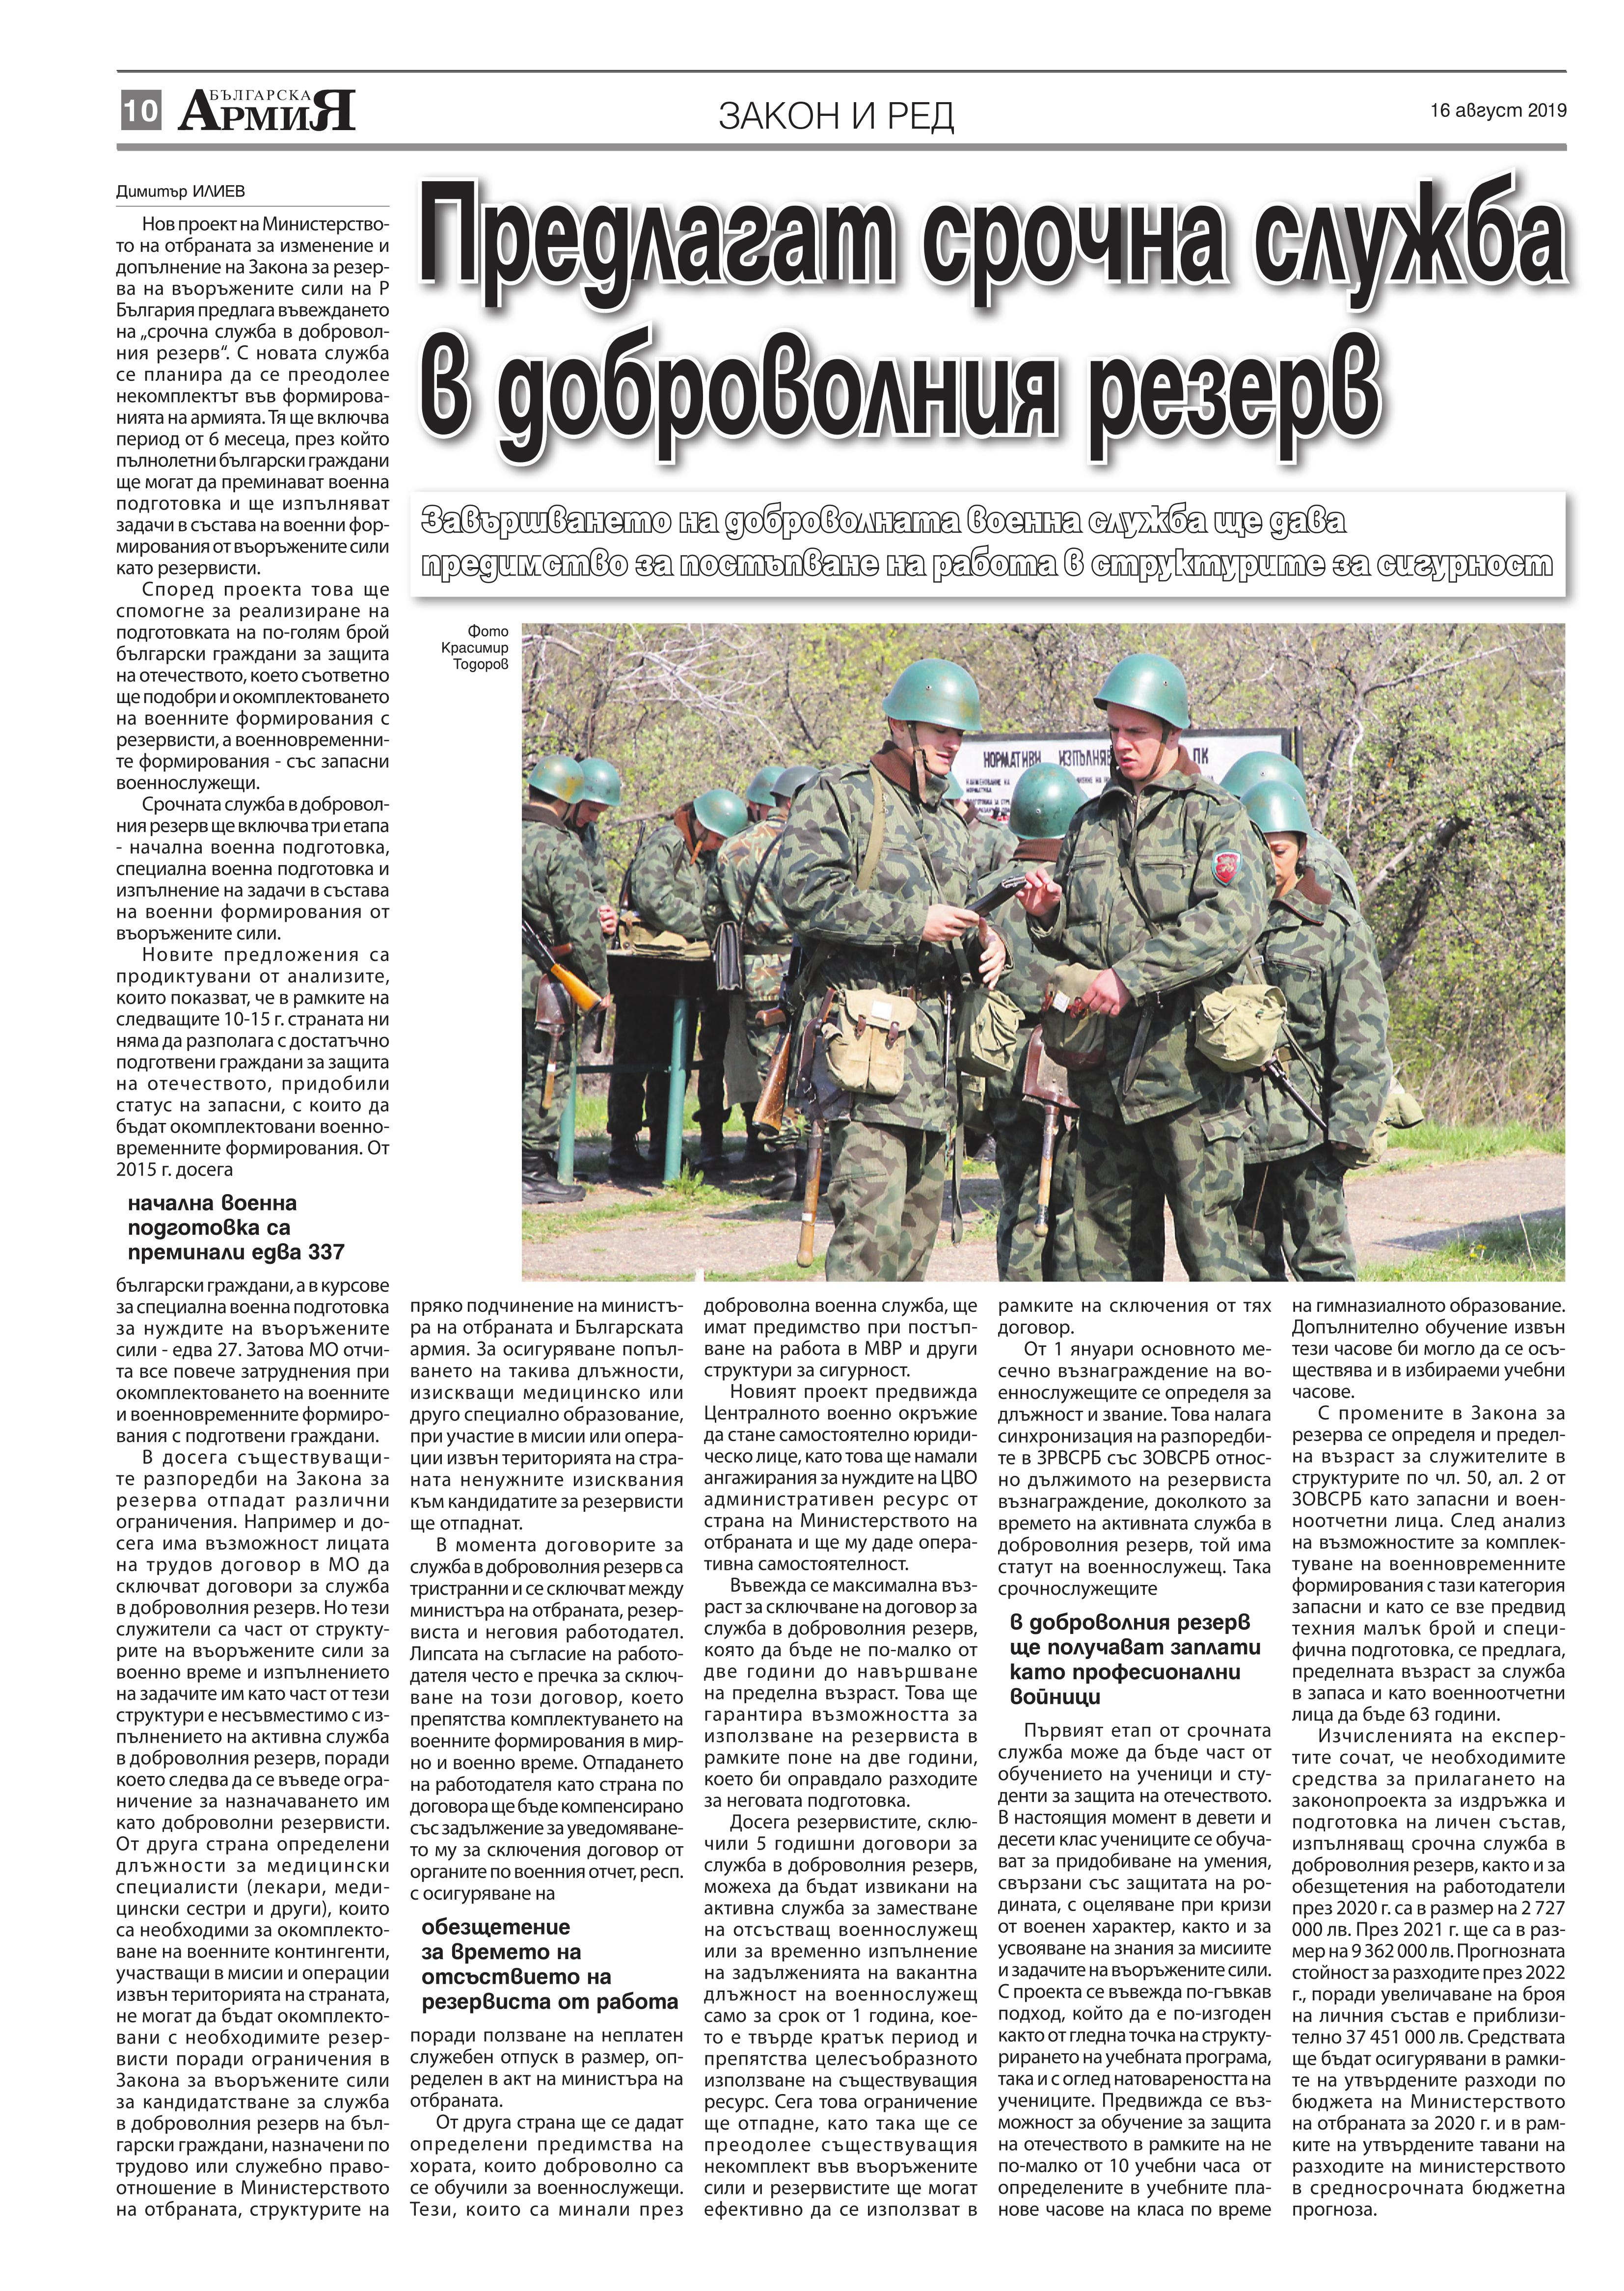 https://armymedia.bg/wp-content/uploads/2015/06/10.page1_-107.jpg